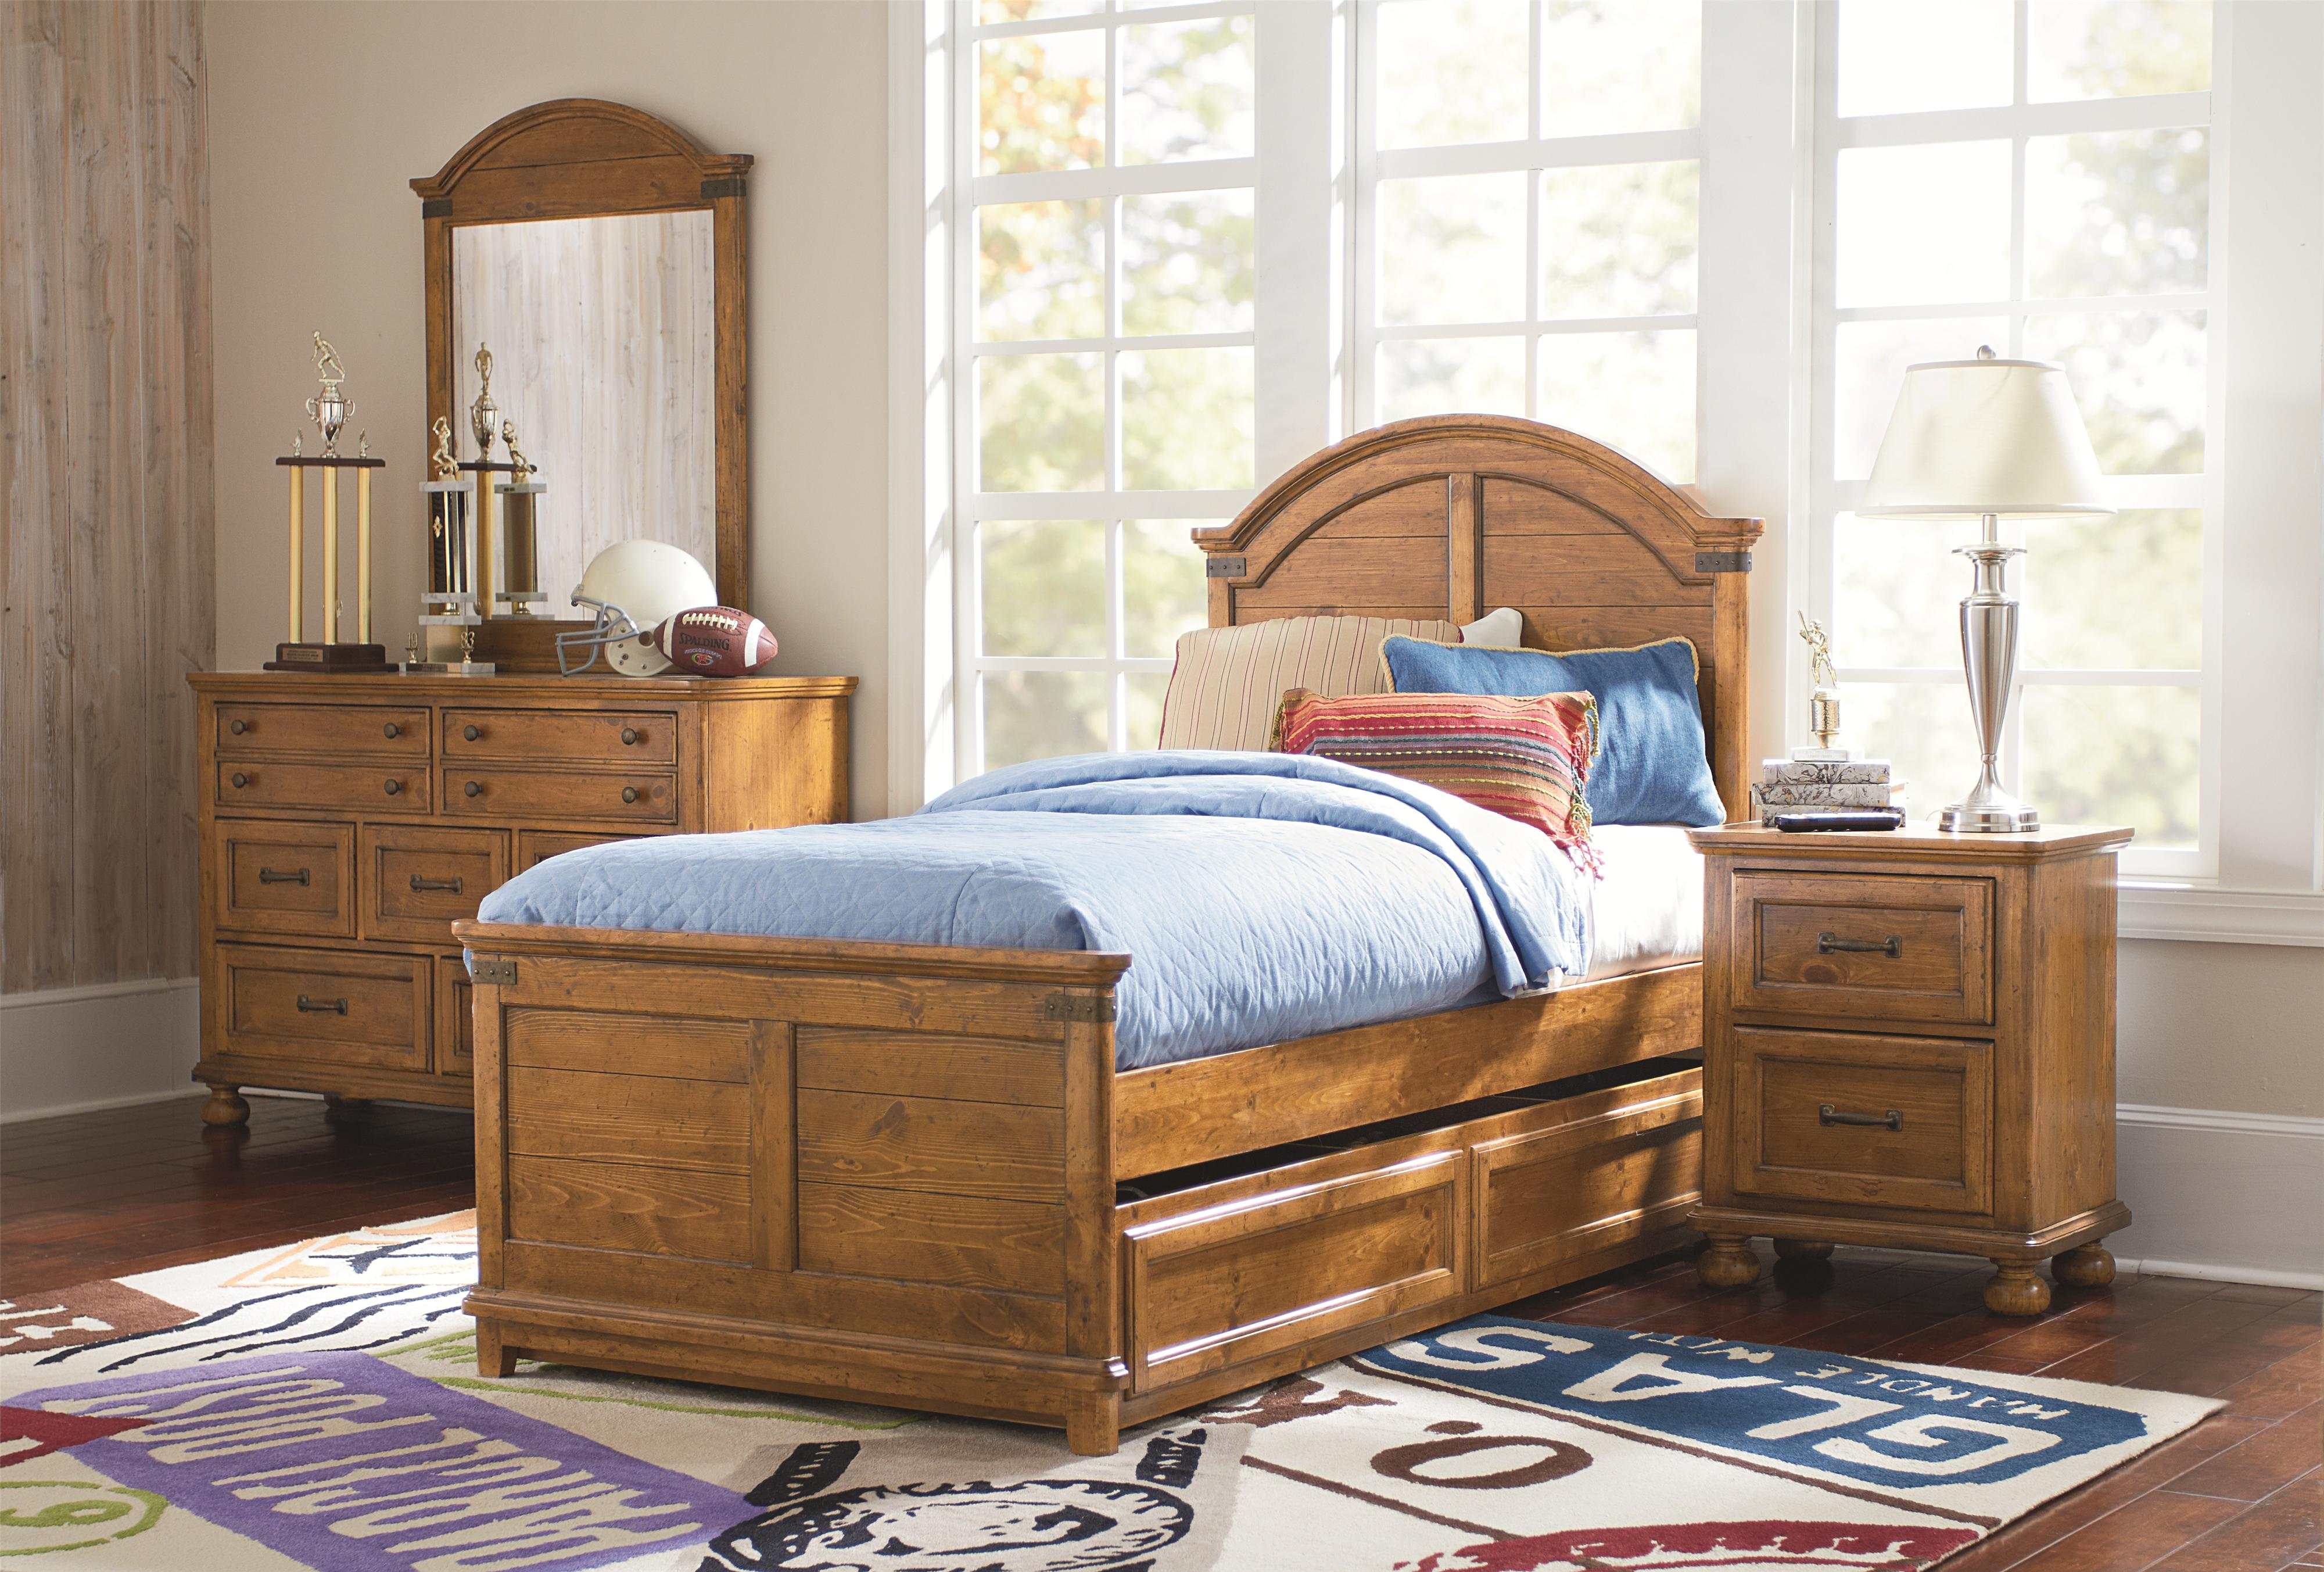 Legacy Classic Kids Bryce Canyon Twin Bedroom Group - Item Number: 3900 T Bedroom Group 4